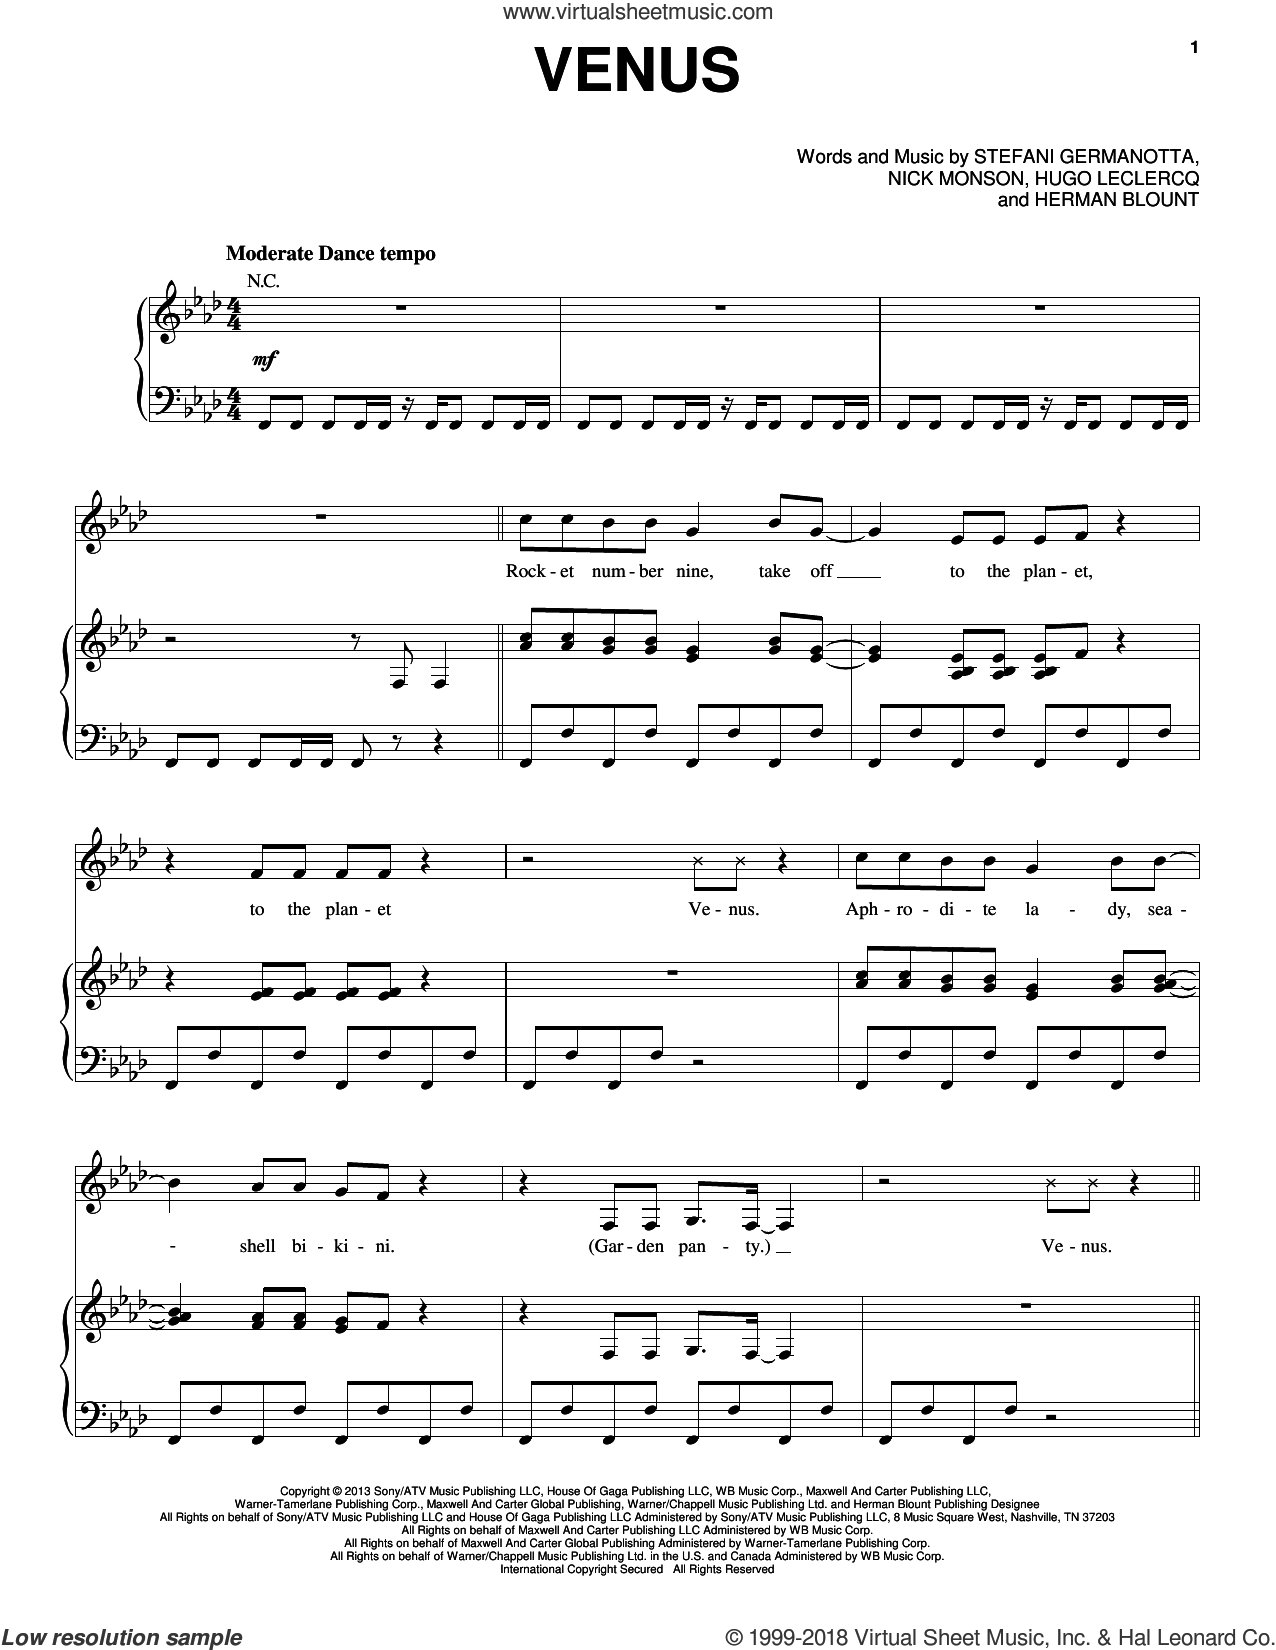 Venus sheet music for voice, piano or guitar by Lady Gaga, Herman Blount, Hugo Leclercq and Nick Monson, intermediate skill level